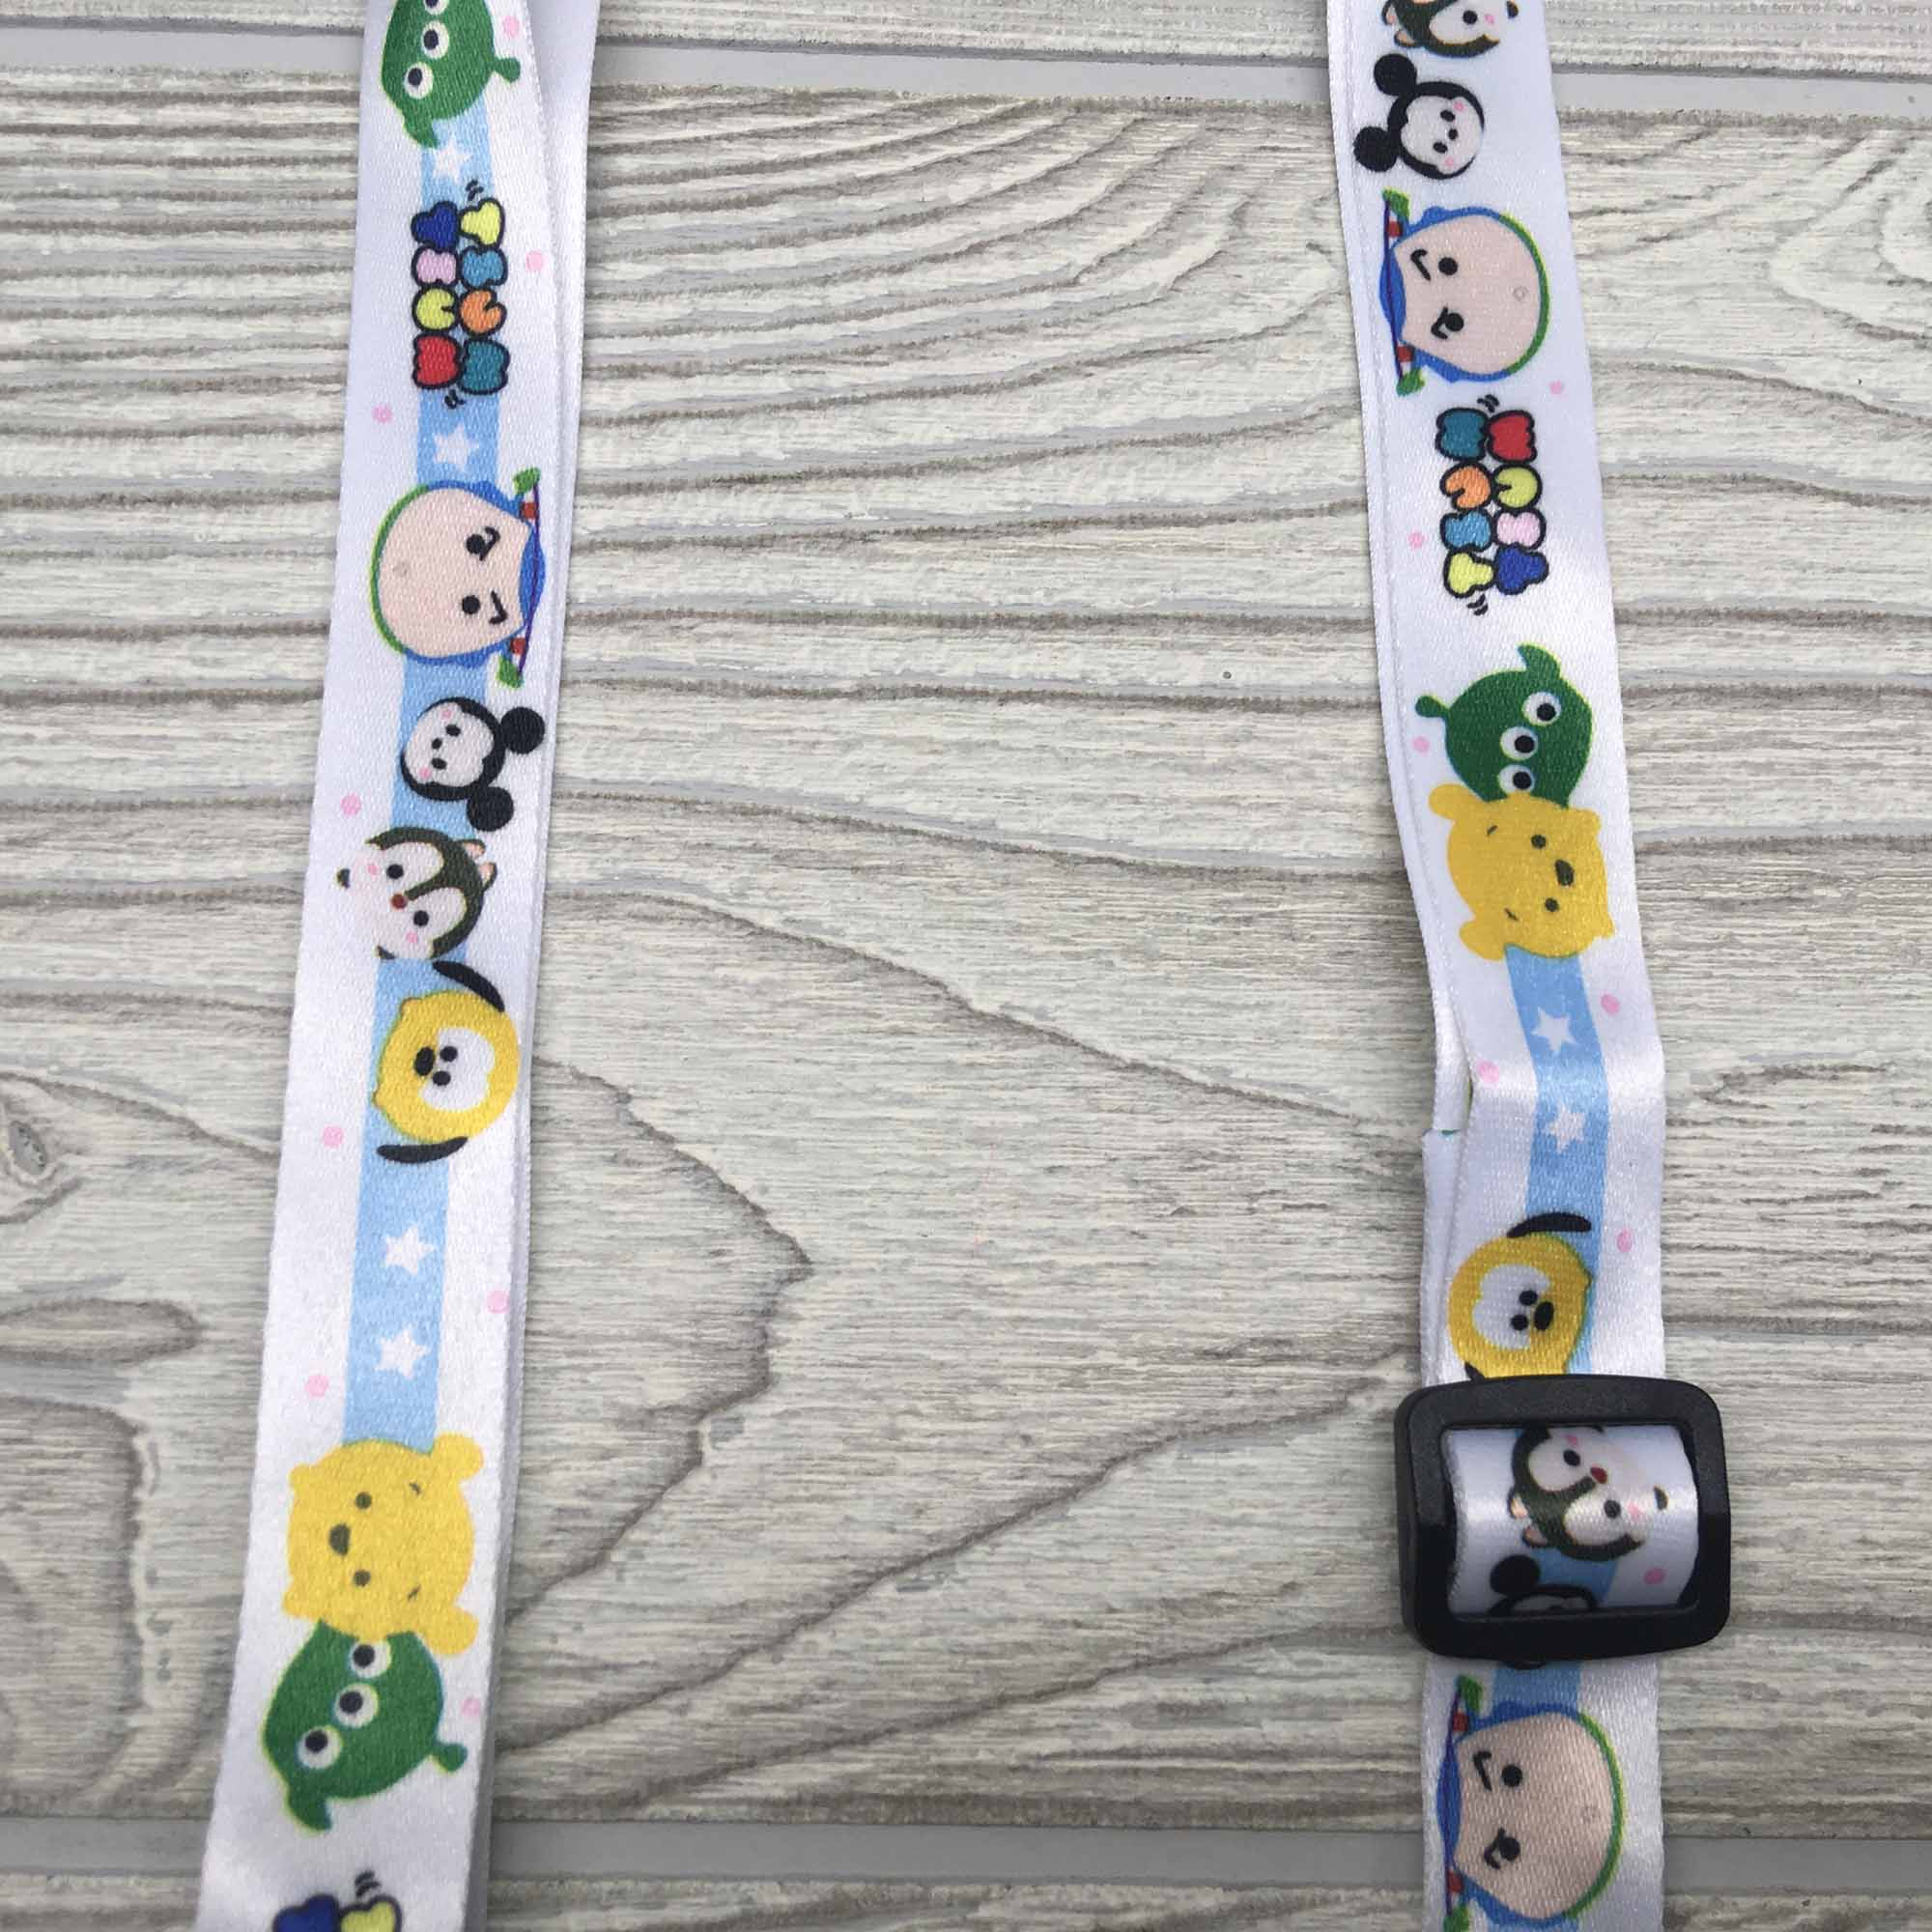 Face Mask Strap Holder Adjustable for Kids and Adults - Tsum Tsum